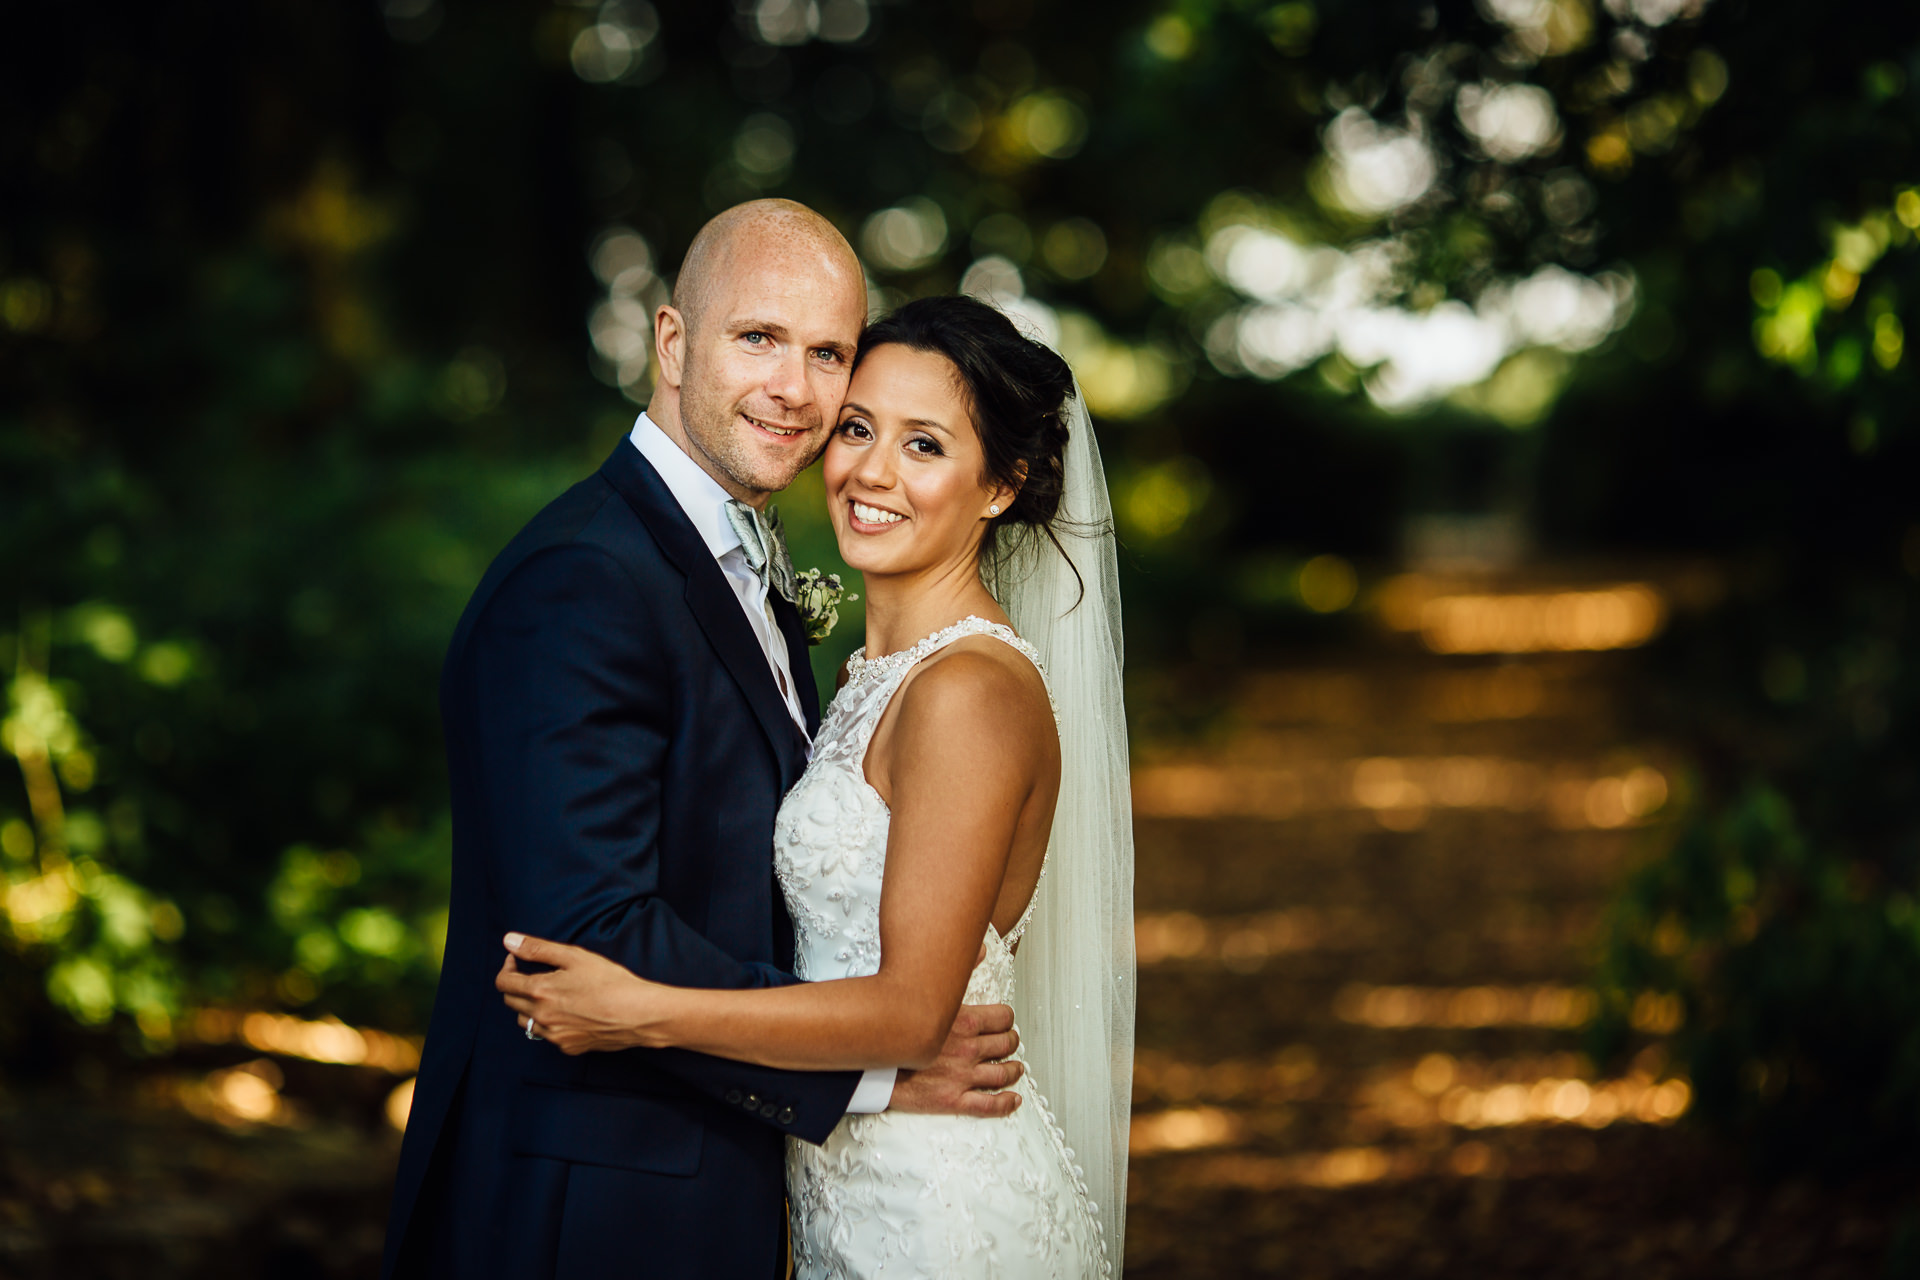 WEDDING PHOTOGRAPHY of bride and groom atinglewood manor